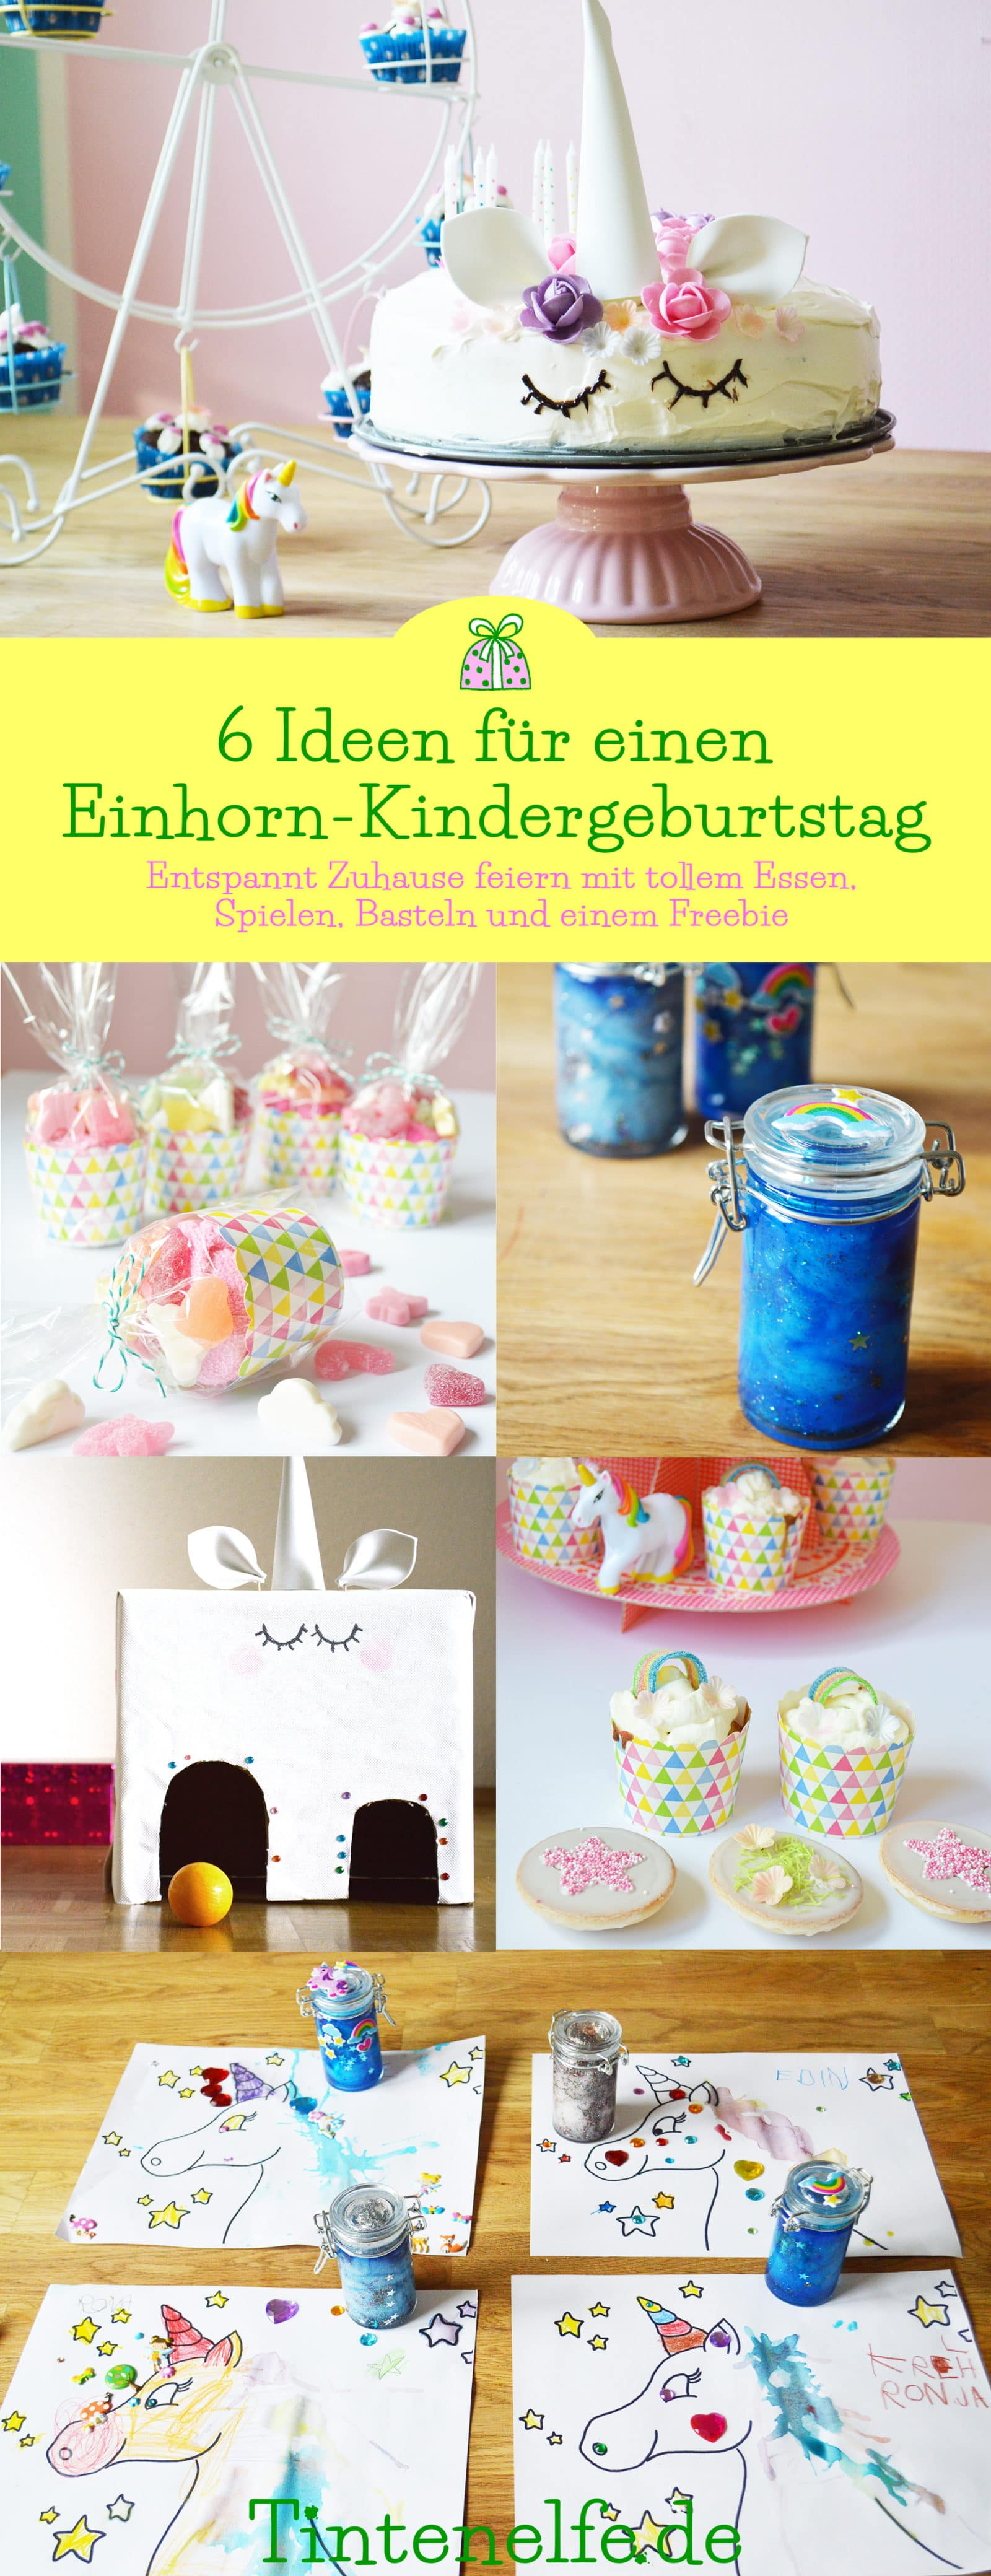 6 diy ideen f r einen einhorn kindergeburtstag handmade kultur. Black Bedroom Furniture Sets. Home Design Ideas